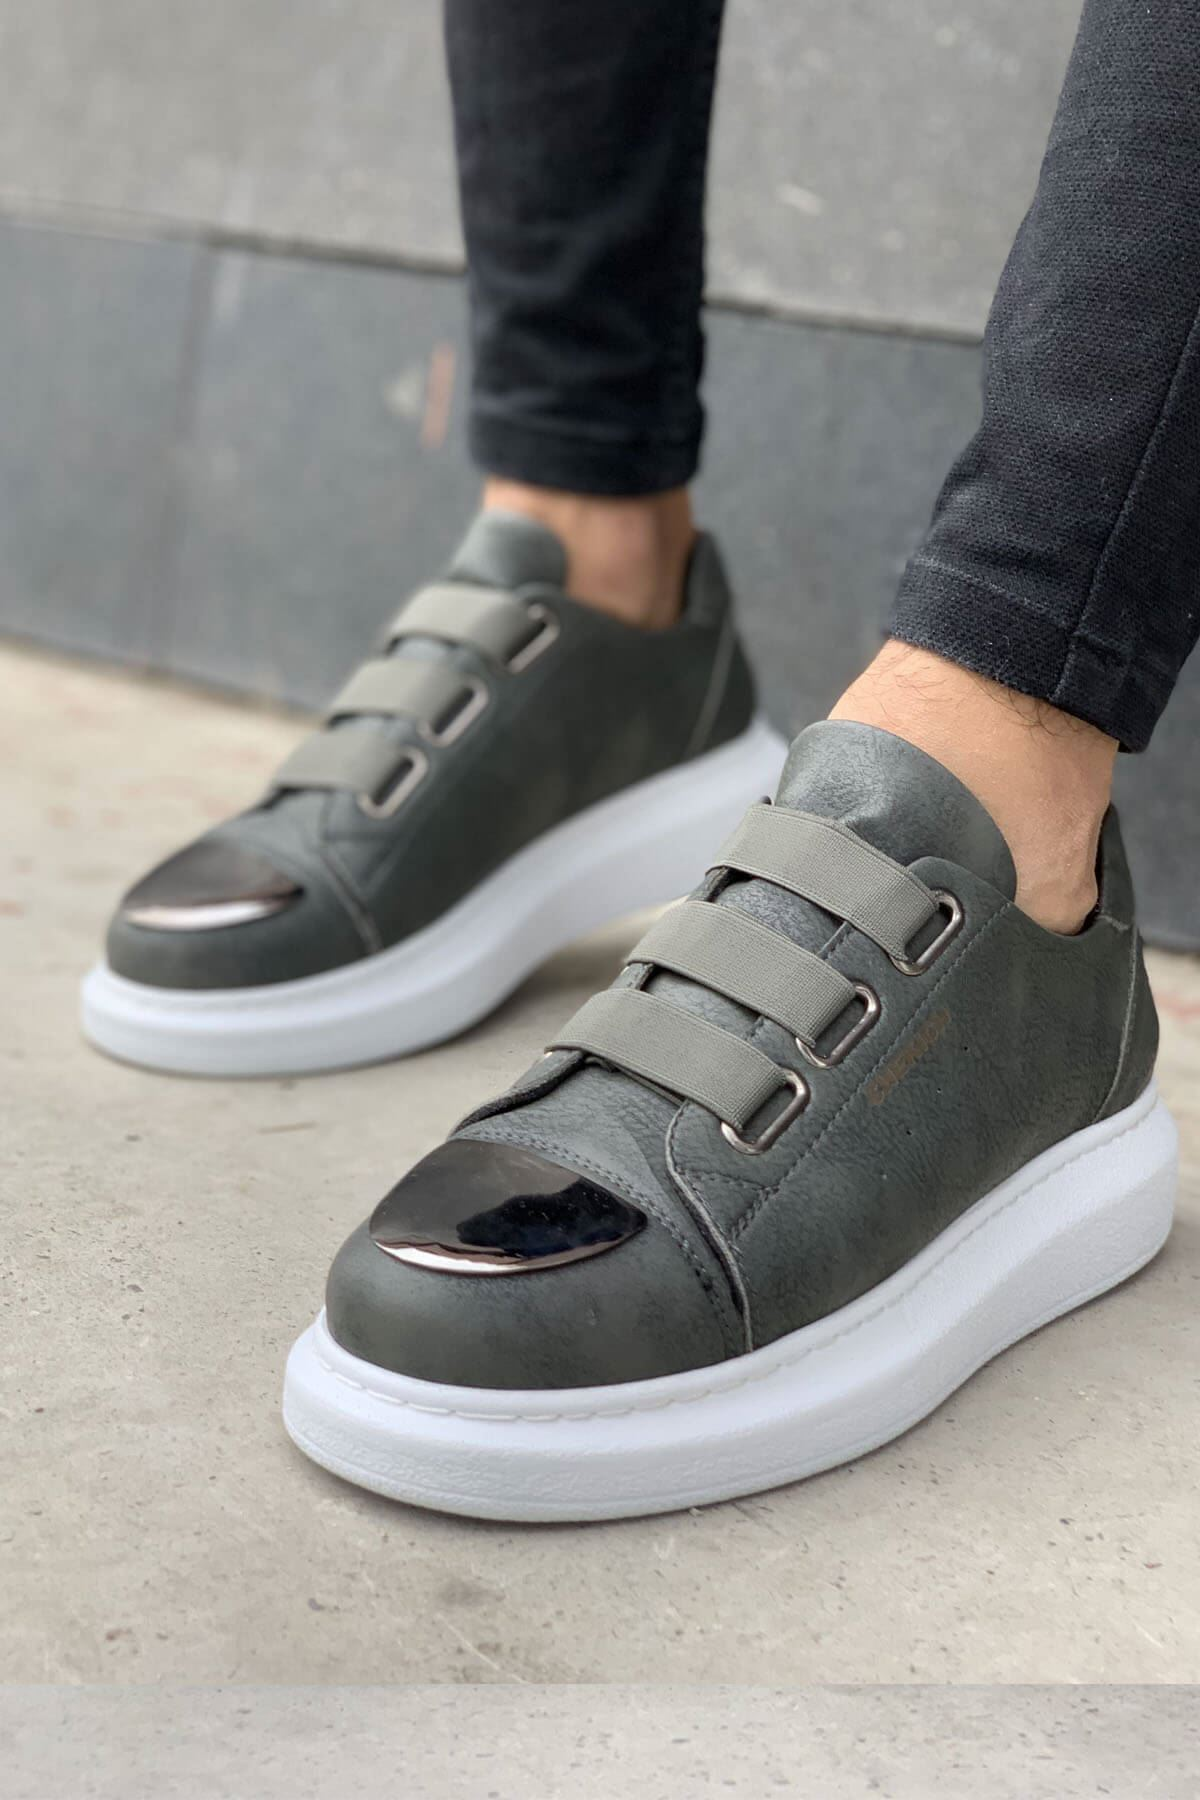 unisex sneakers on fbazaar 1-year warranty